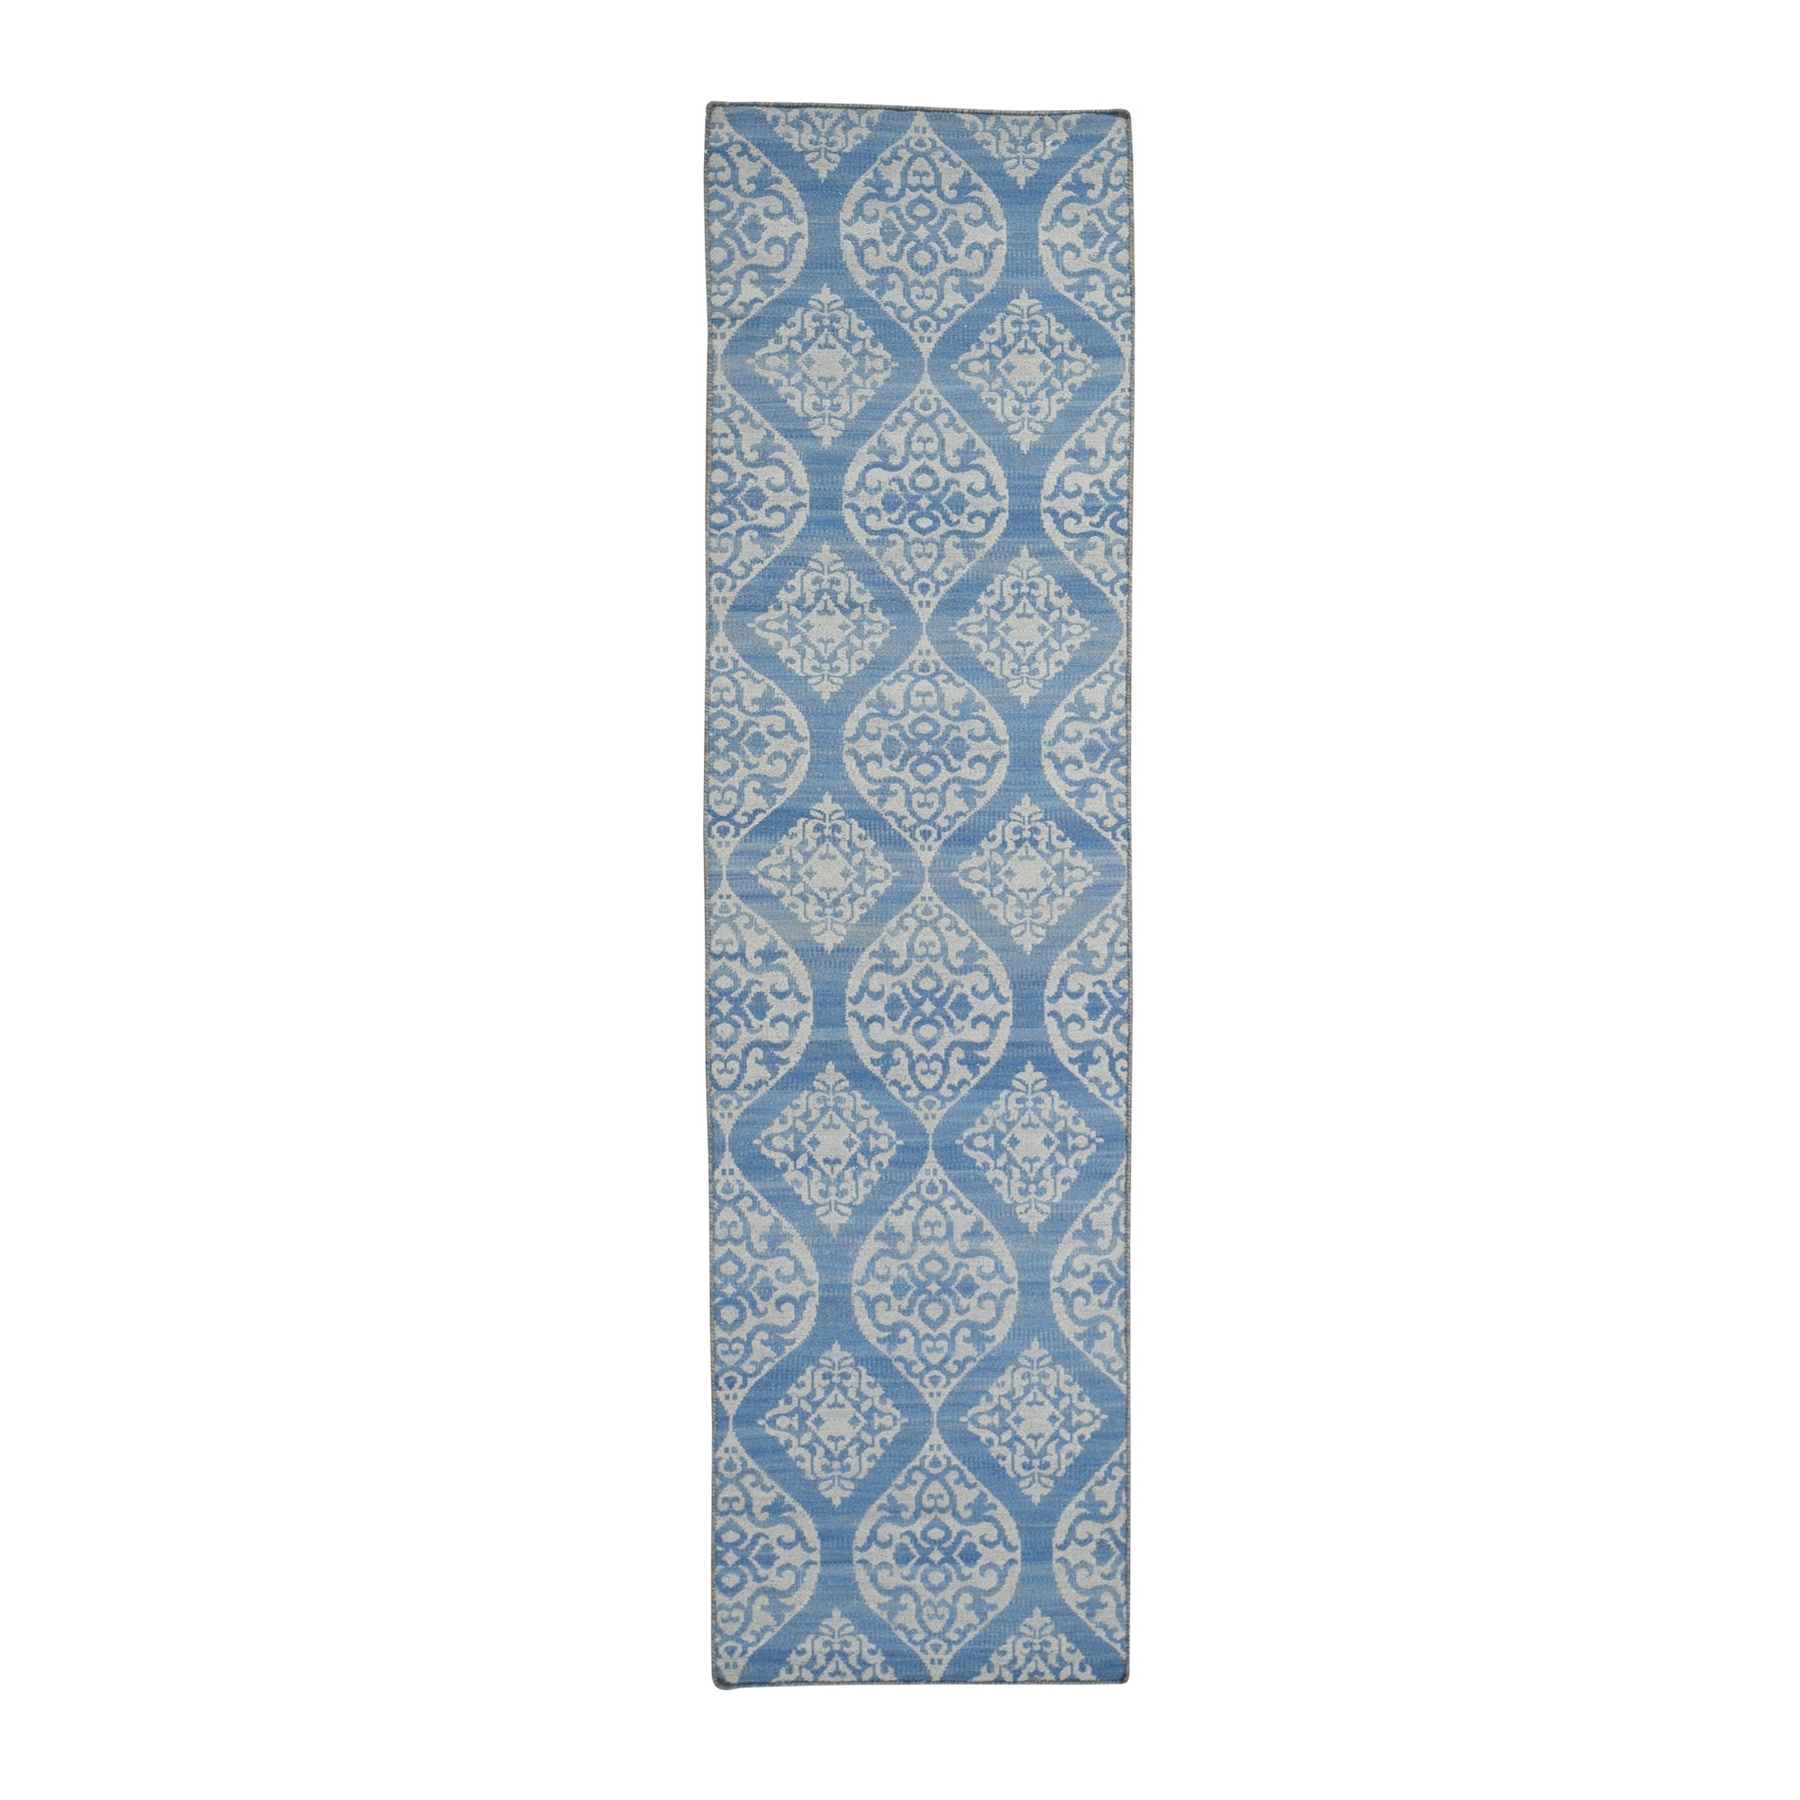 Fine Kilim Collection Hand Woven Blue Rug No: 1132162